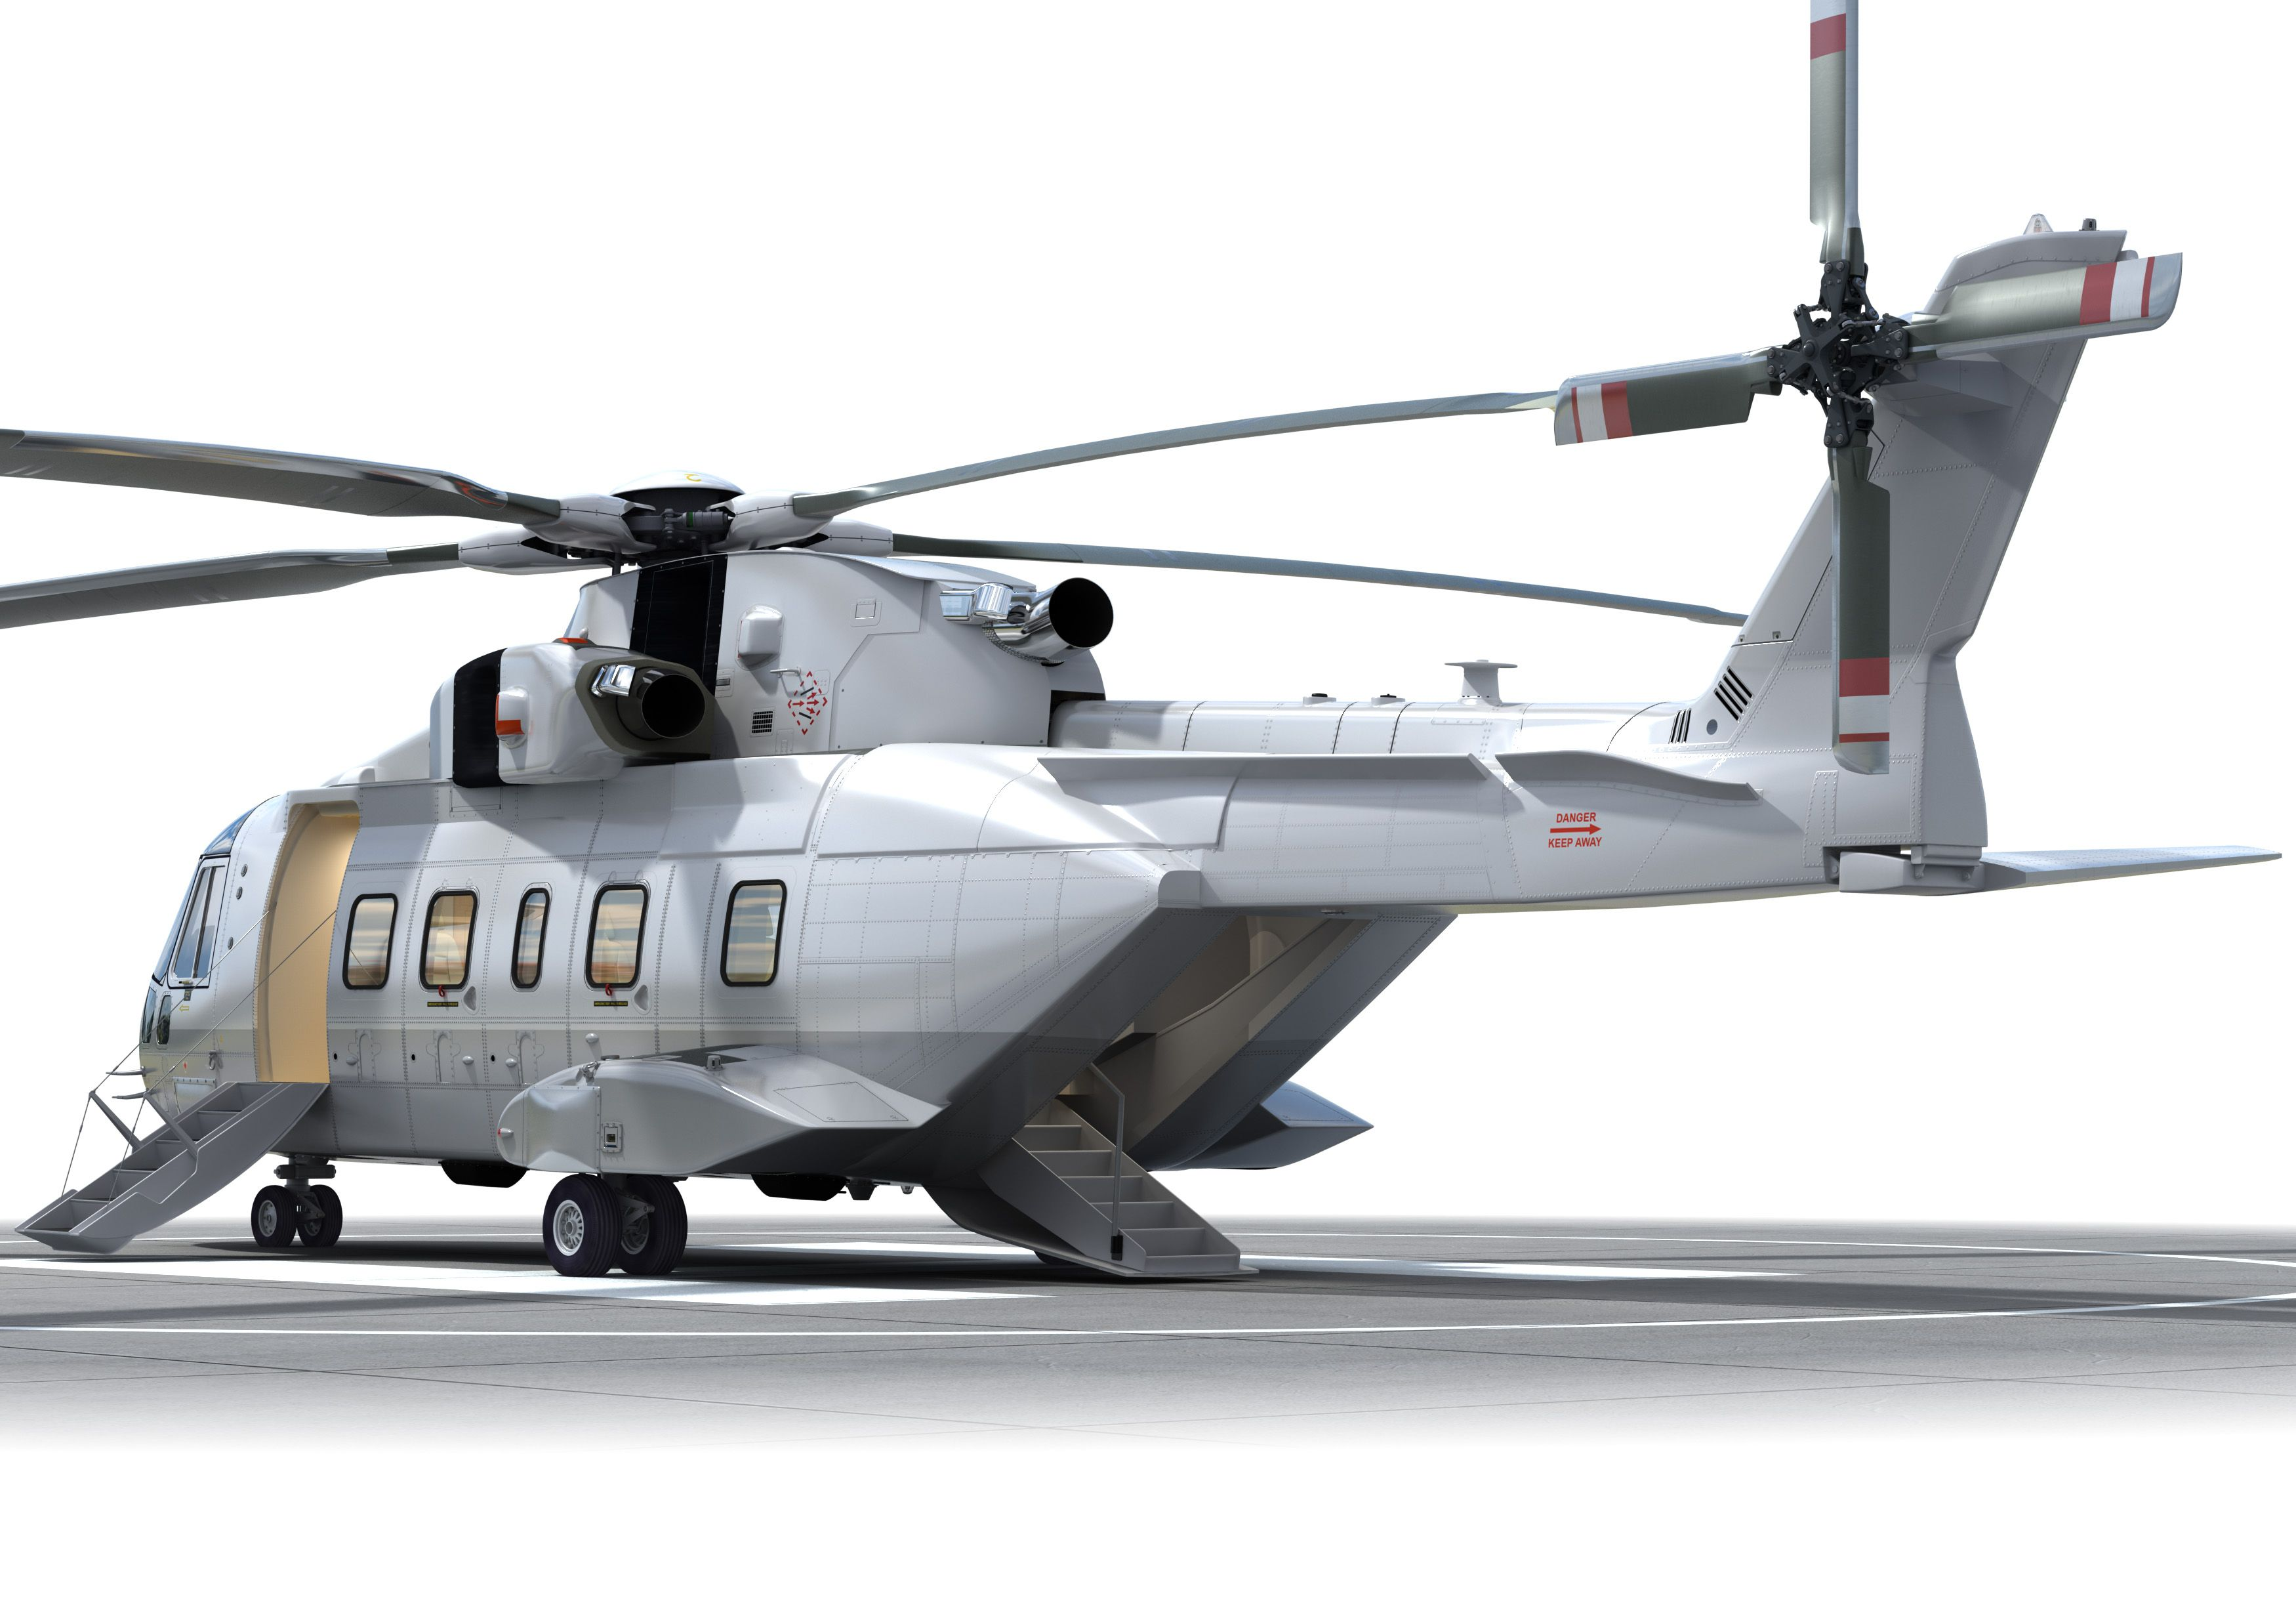 AgustaWestland AW101 VVIP with famous Rear Airstair Door...